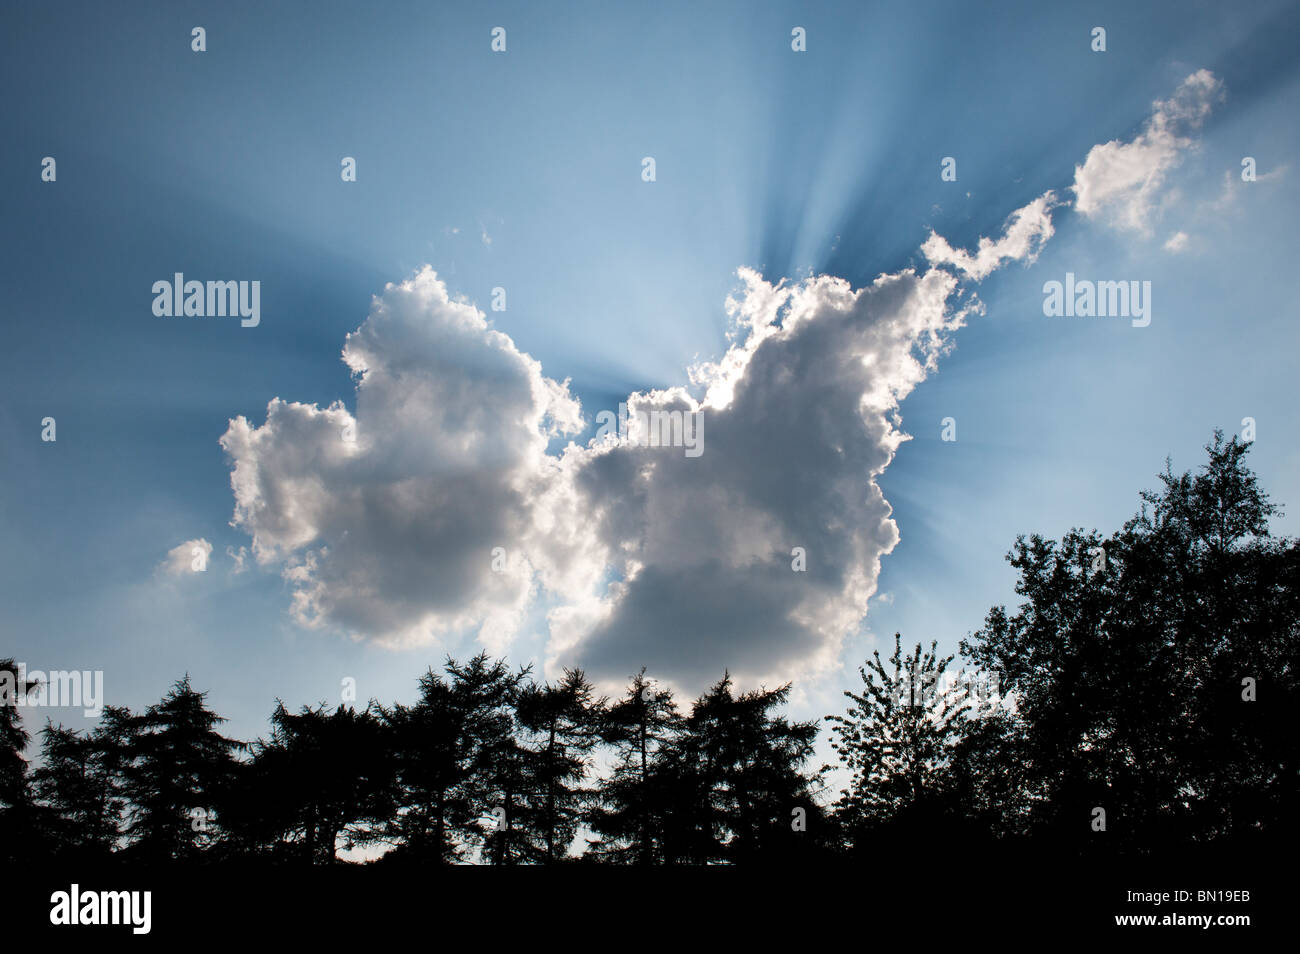 Dramatic sunrays behind a cloud in the english countryside. Oxfordshire, England - Stock Image